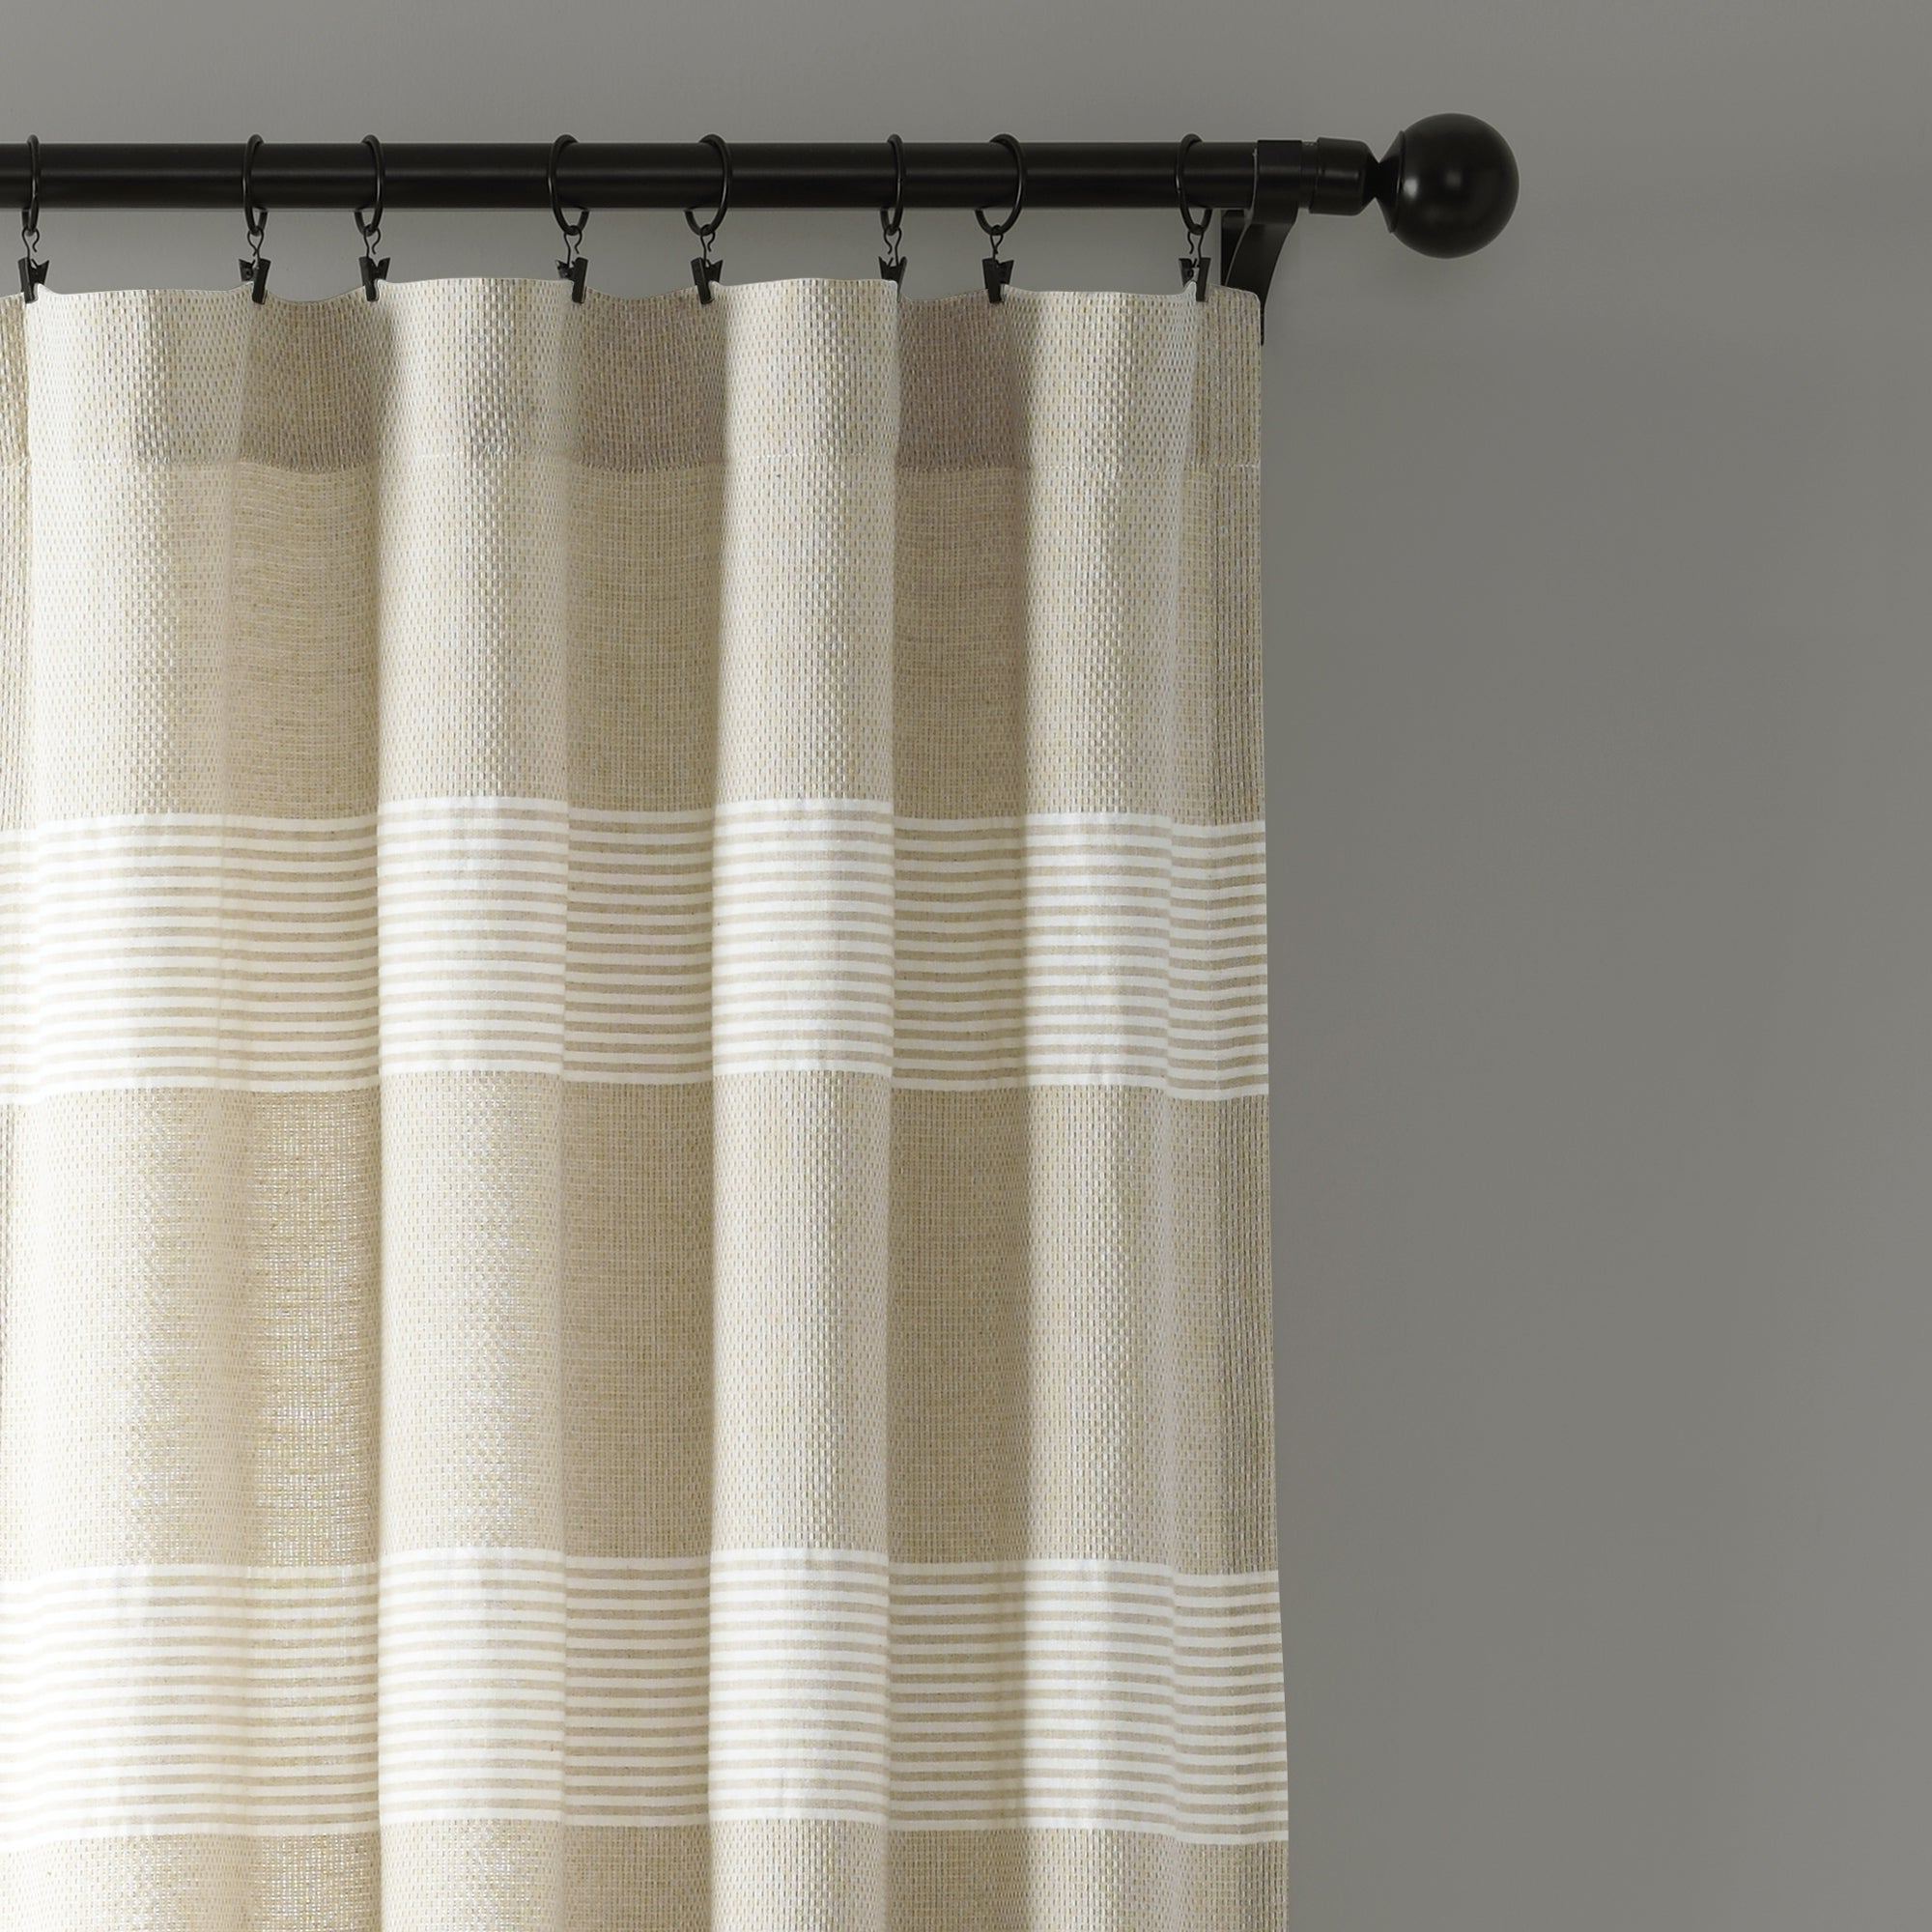 Current Lush Decor Tucker Stripe Yarn Dyed Cotton Knotted Tassel Window Curtain  Panel Pair Within Ombre Stripe Yarn Dyed Cotton Window Curtain Panel Pairs (View 5 of 20)